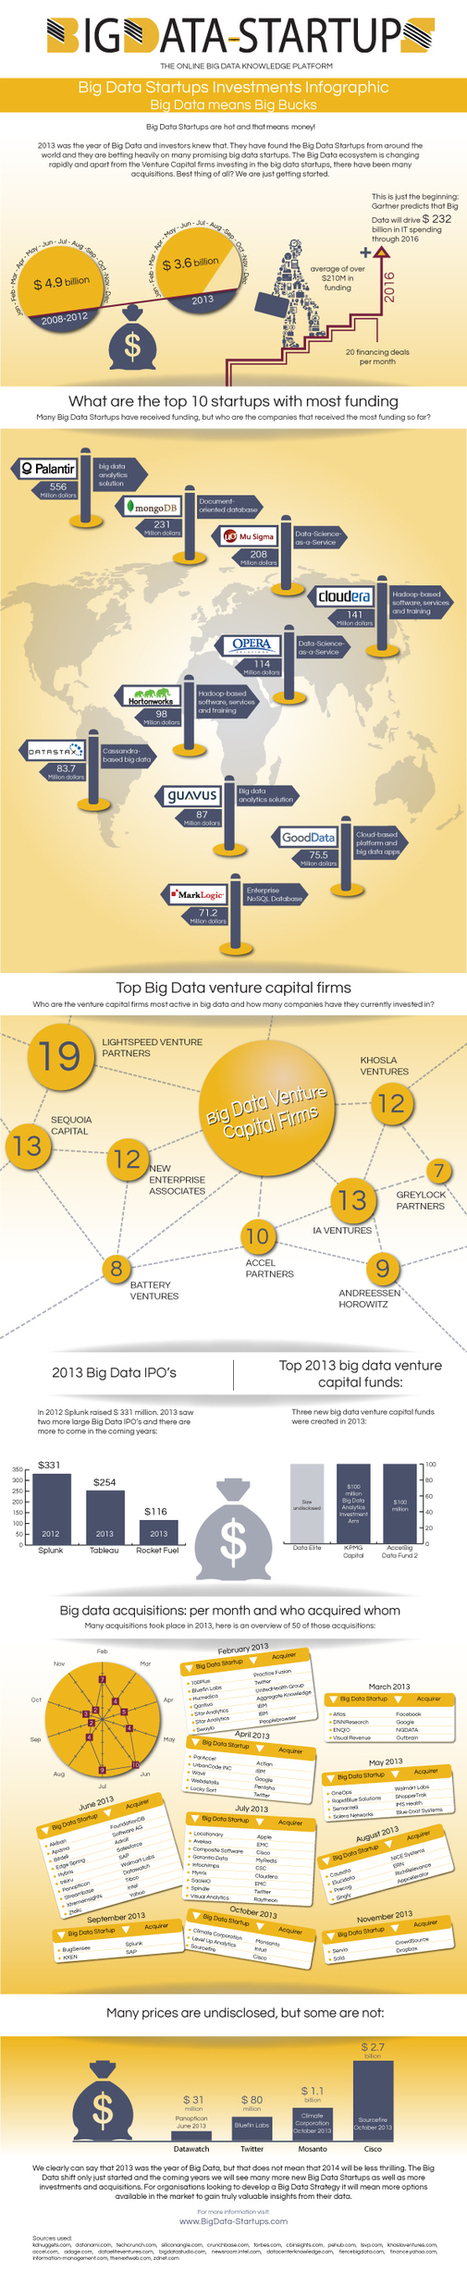 Big Data Startups: $3.6 Billion in 2013 (Infographic) | Big Data | Scoop.it